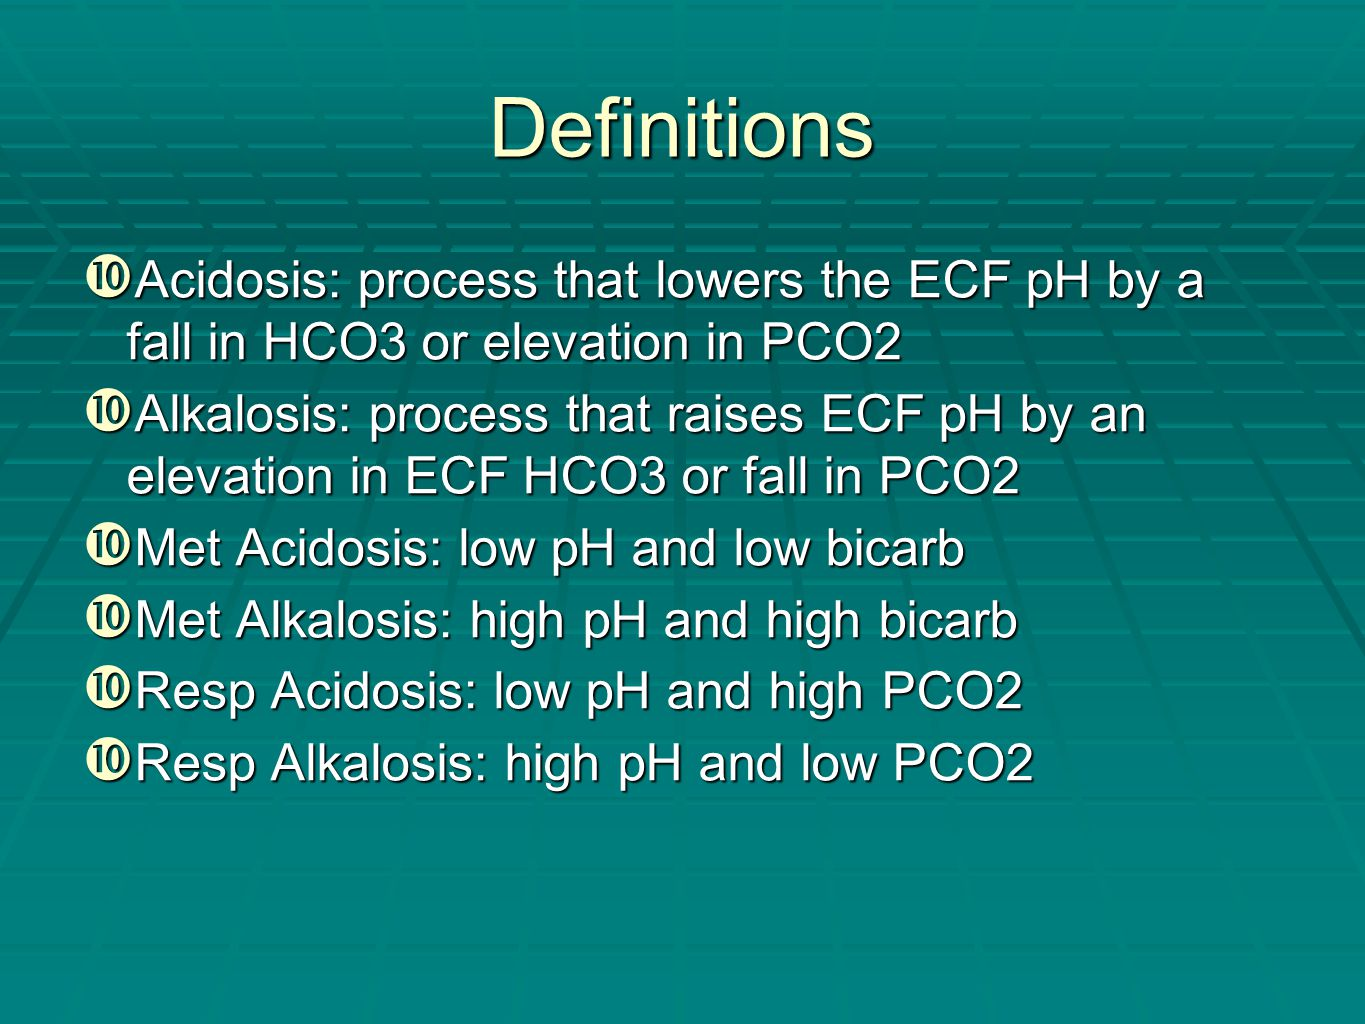 Definitions Acidosis: process that lowers the ECF pH by a fall in HCO3 or elevation in PCO2.